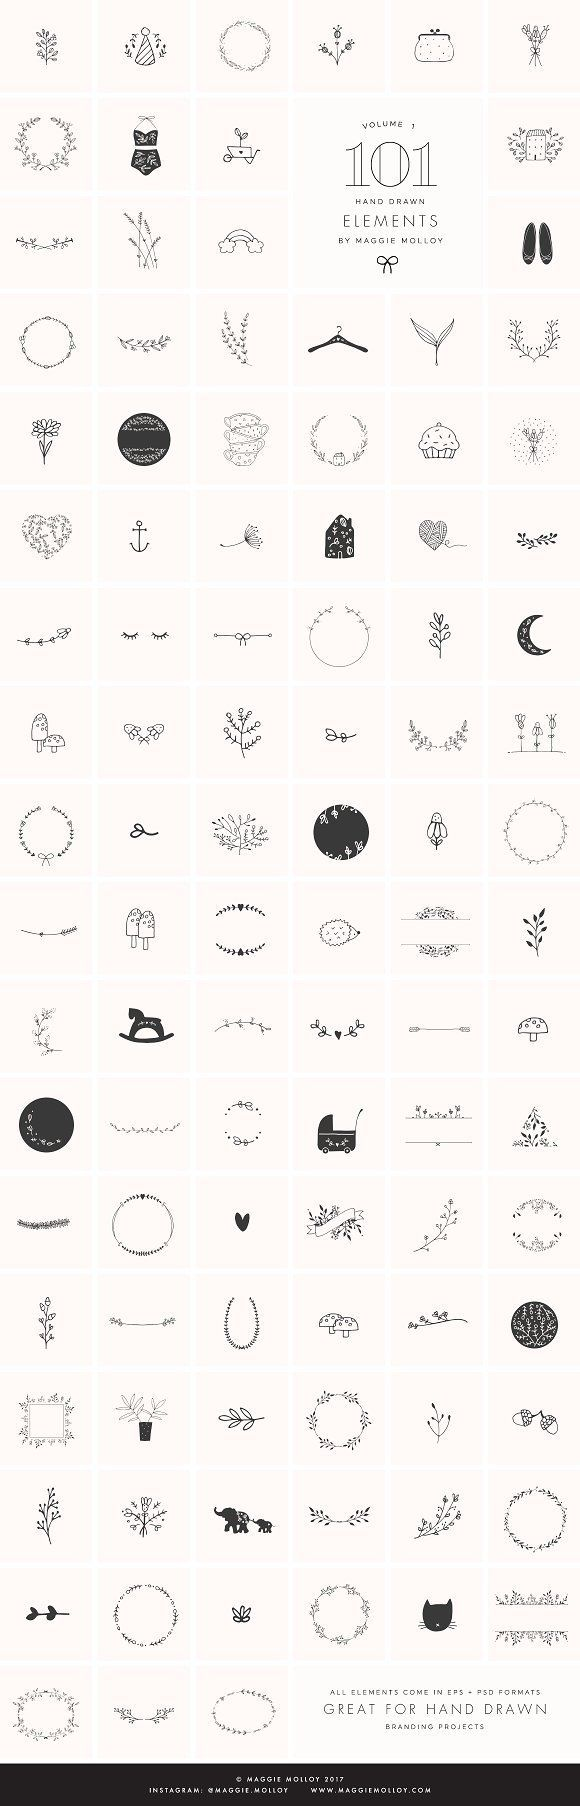 101 Hand Drawn Logo Elements EPS PSD by Maggie Molloy on @creativemarket